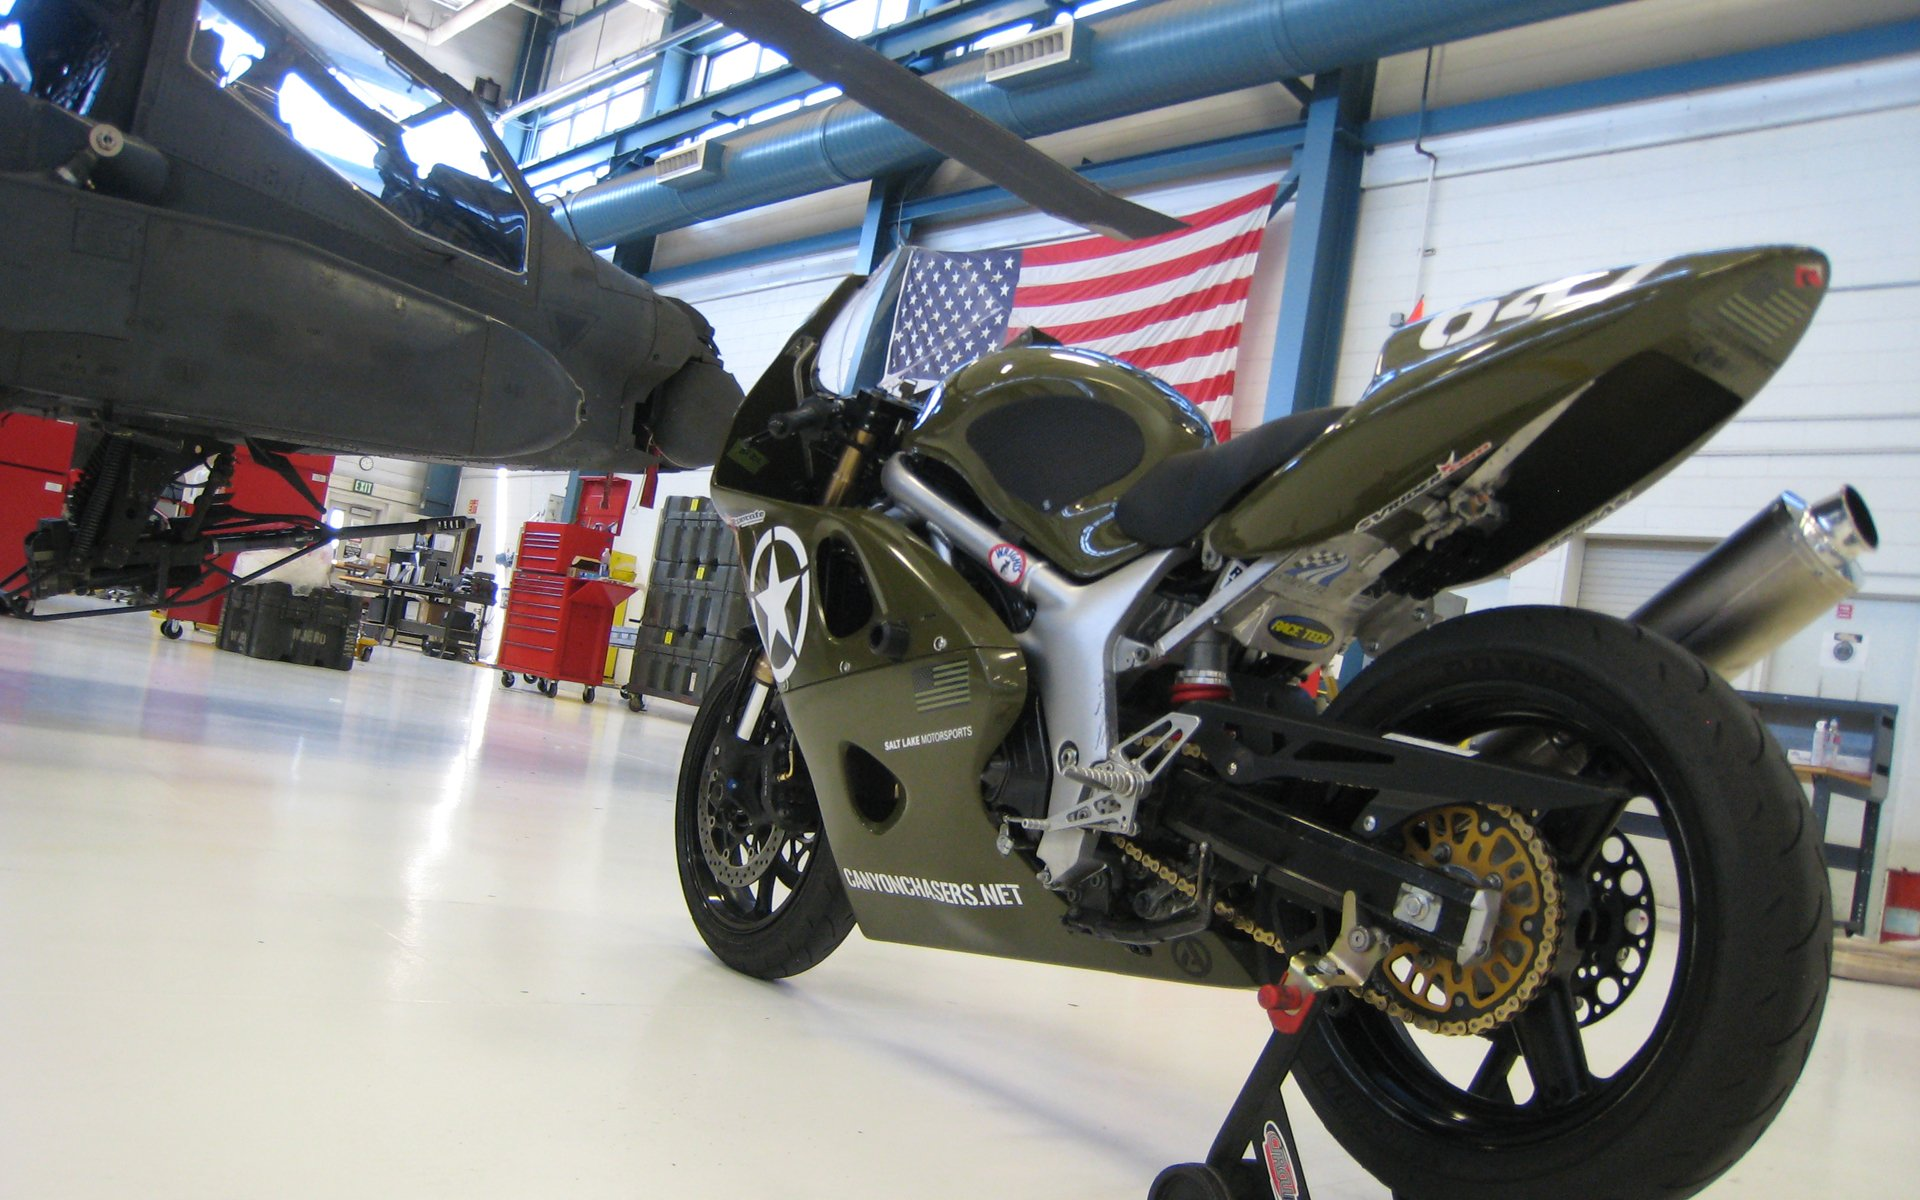 SV650 Race Motorcycle with Apache Full HD Wallpaper and 1920x1200